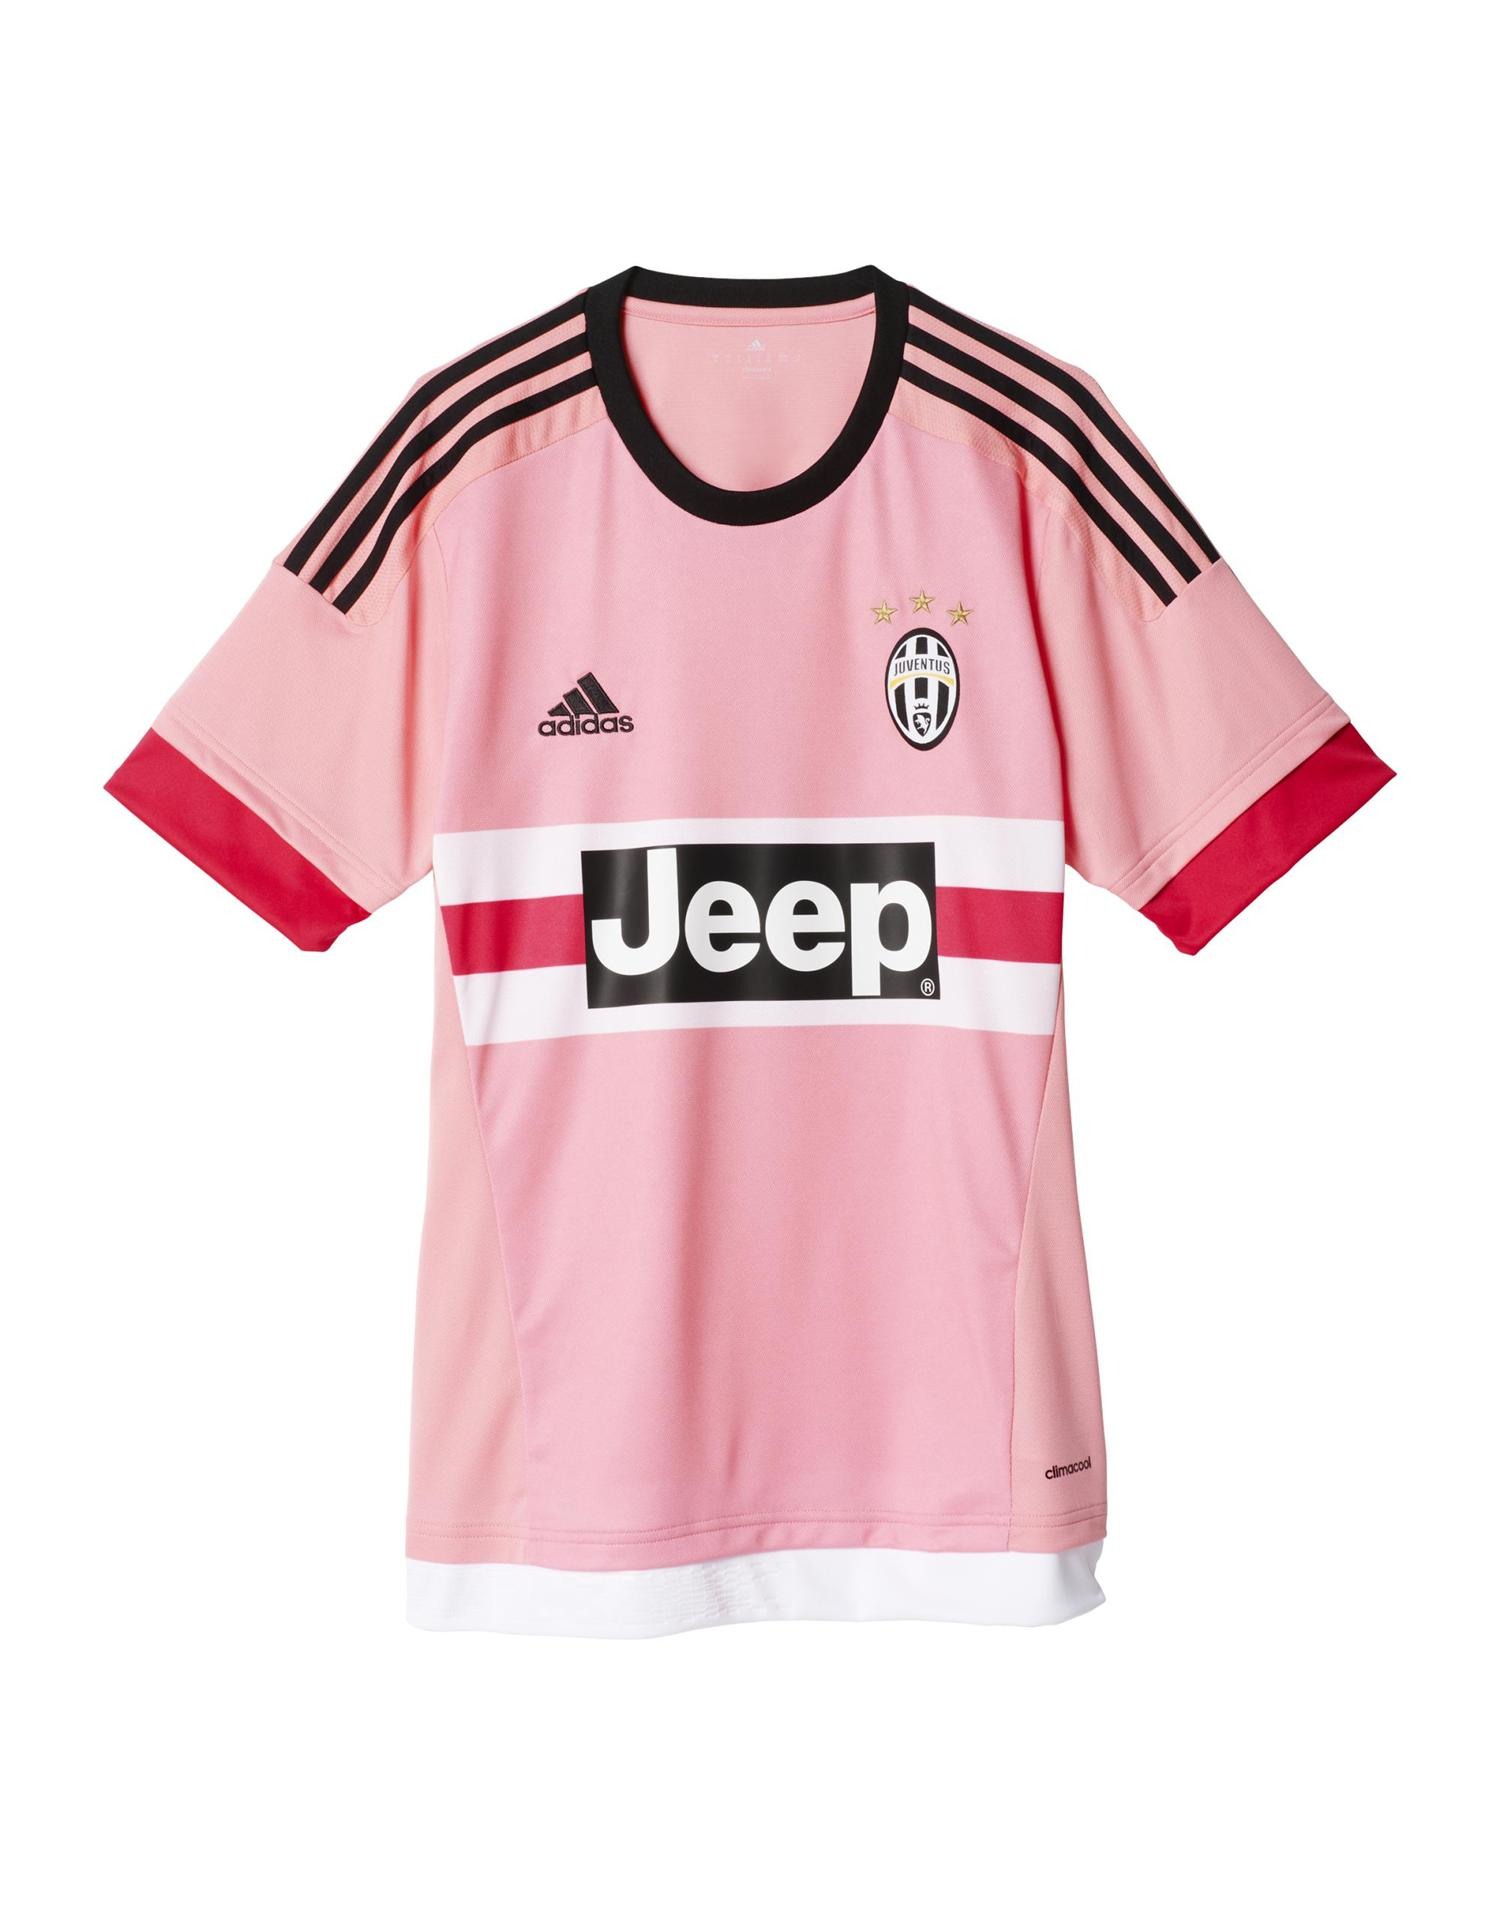 ADIDAS Maglia Away Replica Player Juventus (L - ROSA)